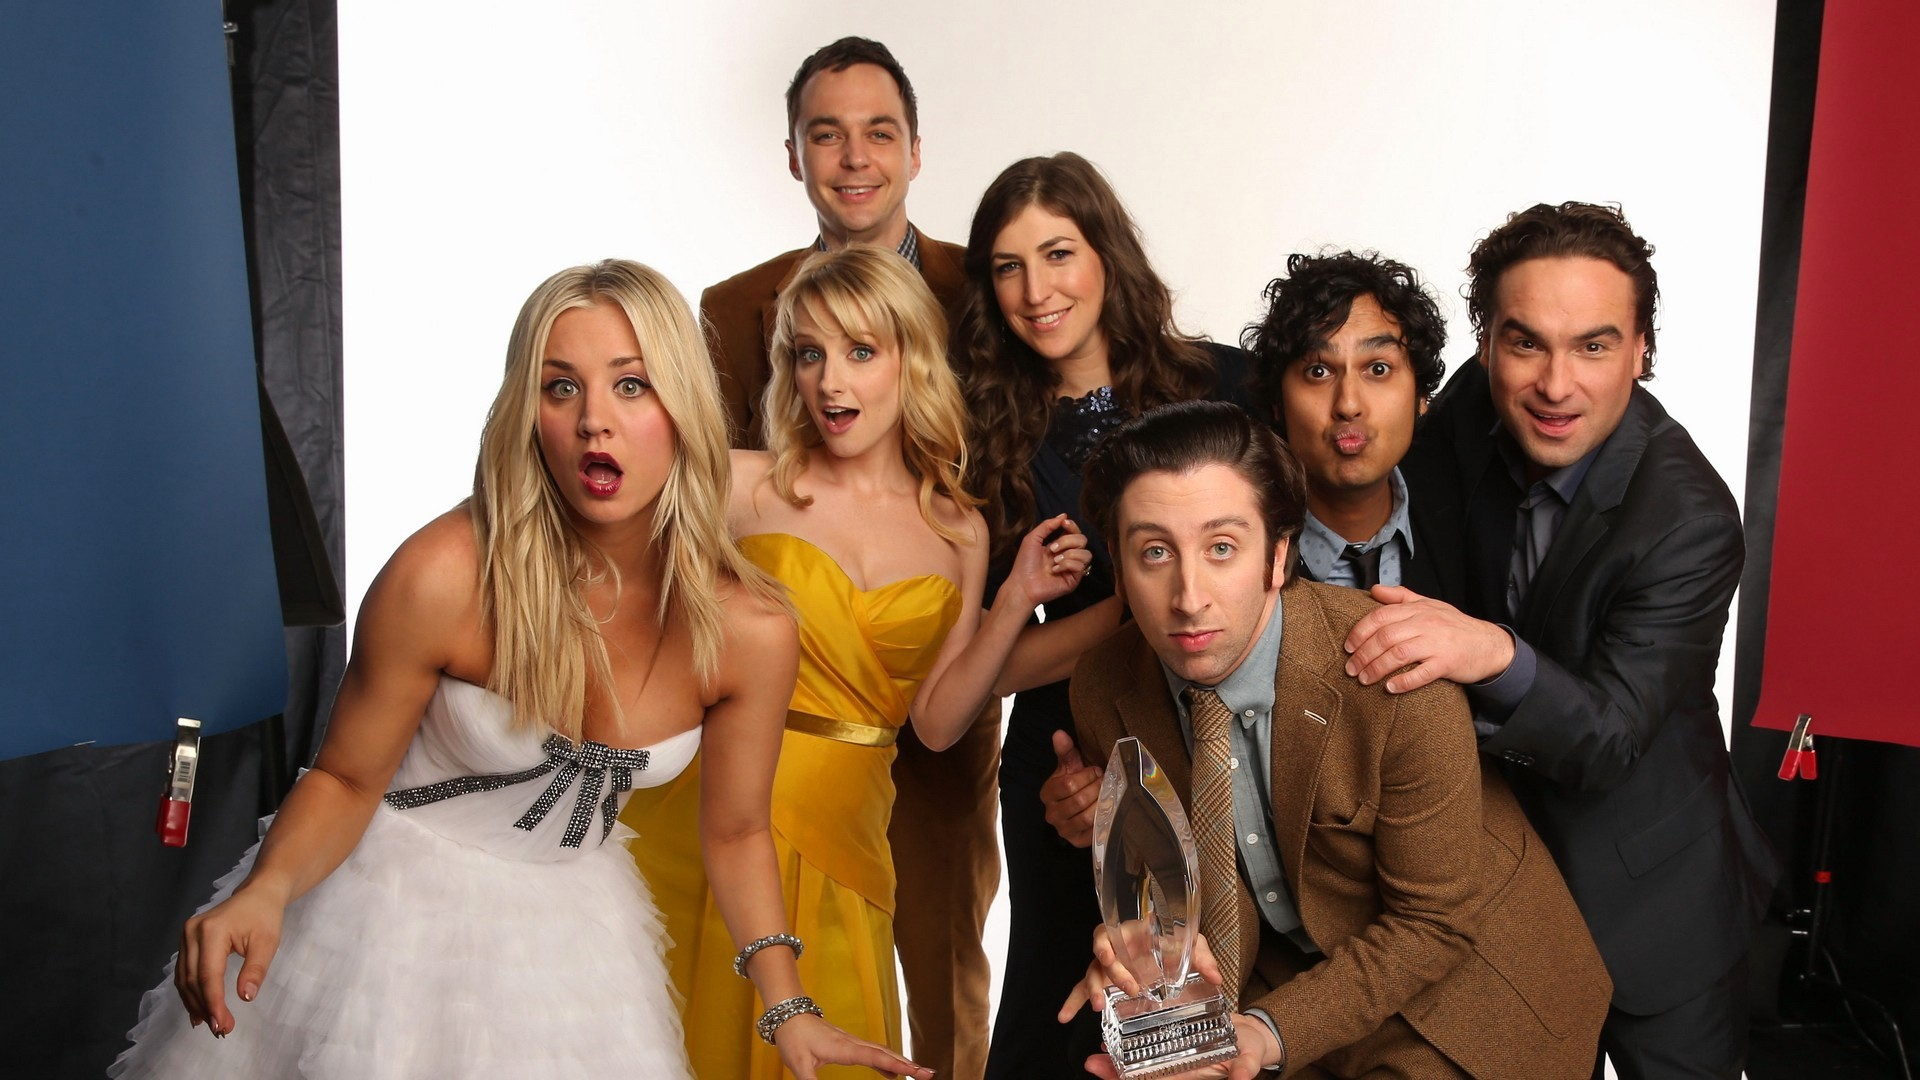 Res: 1920x1080, pictures big bang theory desktop wallpapers high definition monitor  download free amazing background photos artwork 1920×1080 Wallpaper HD